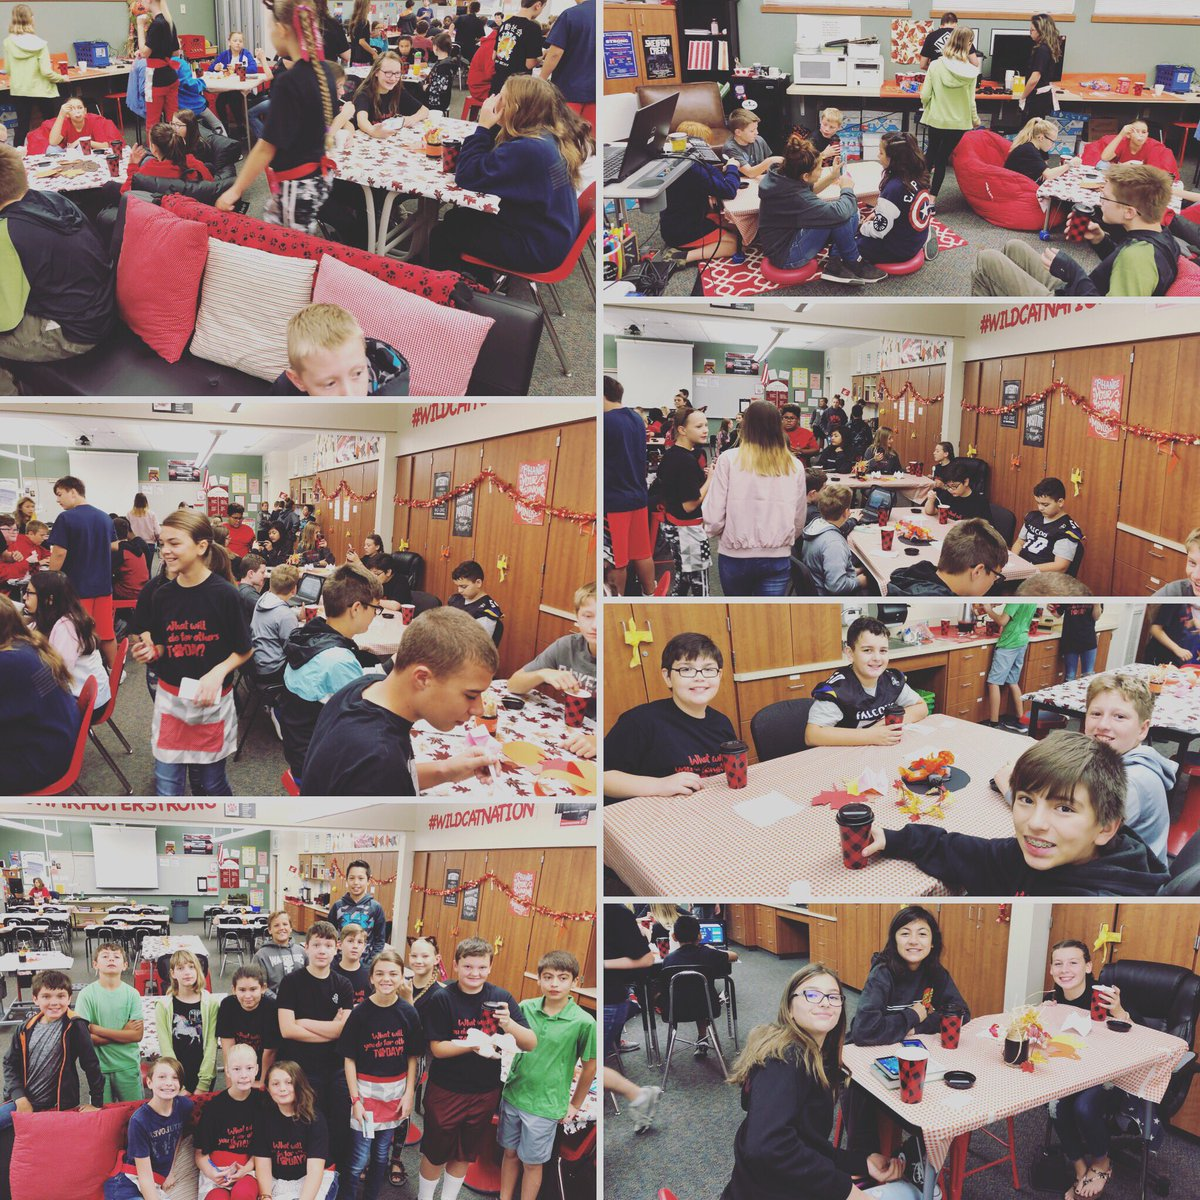 So proud of my leadership students for hosting an amazing Wildcat Cafe this morning! #wildcatnation